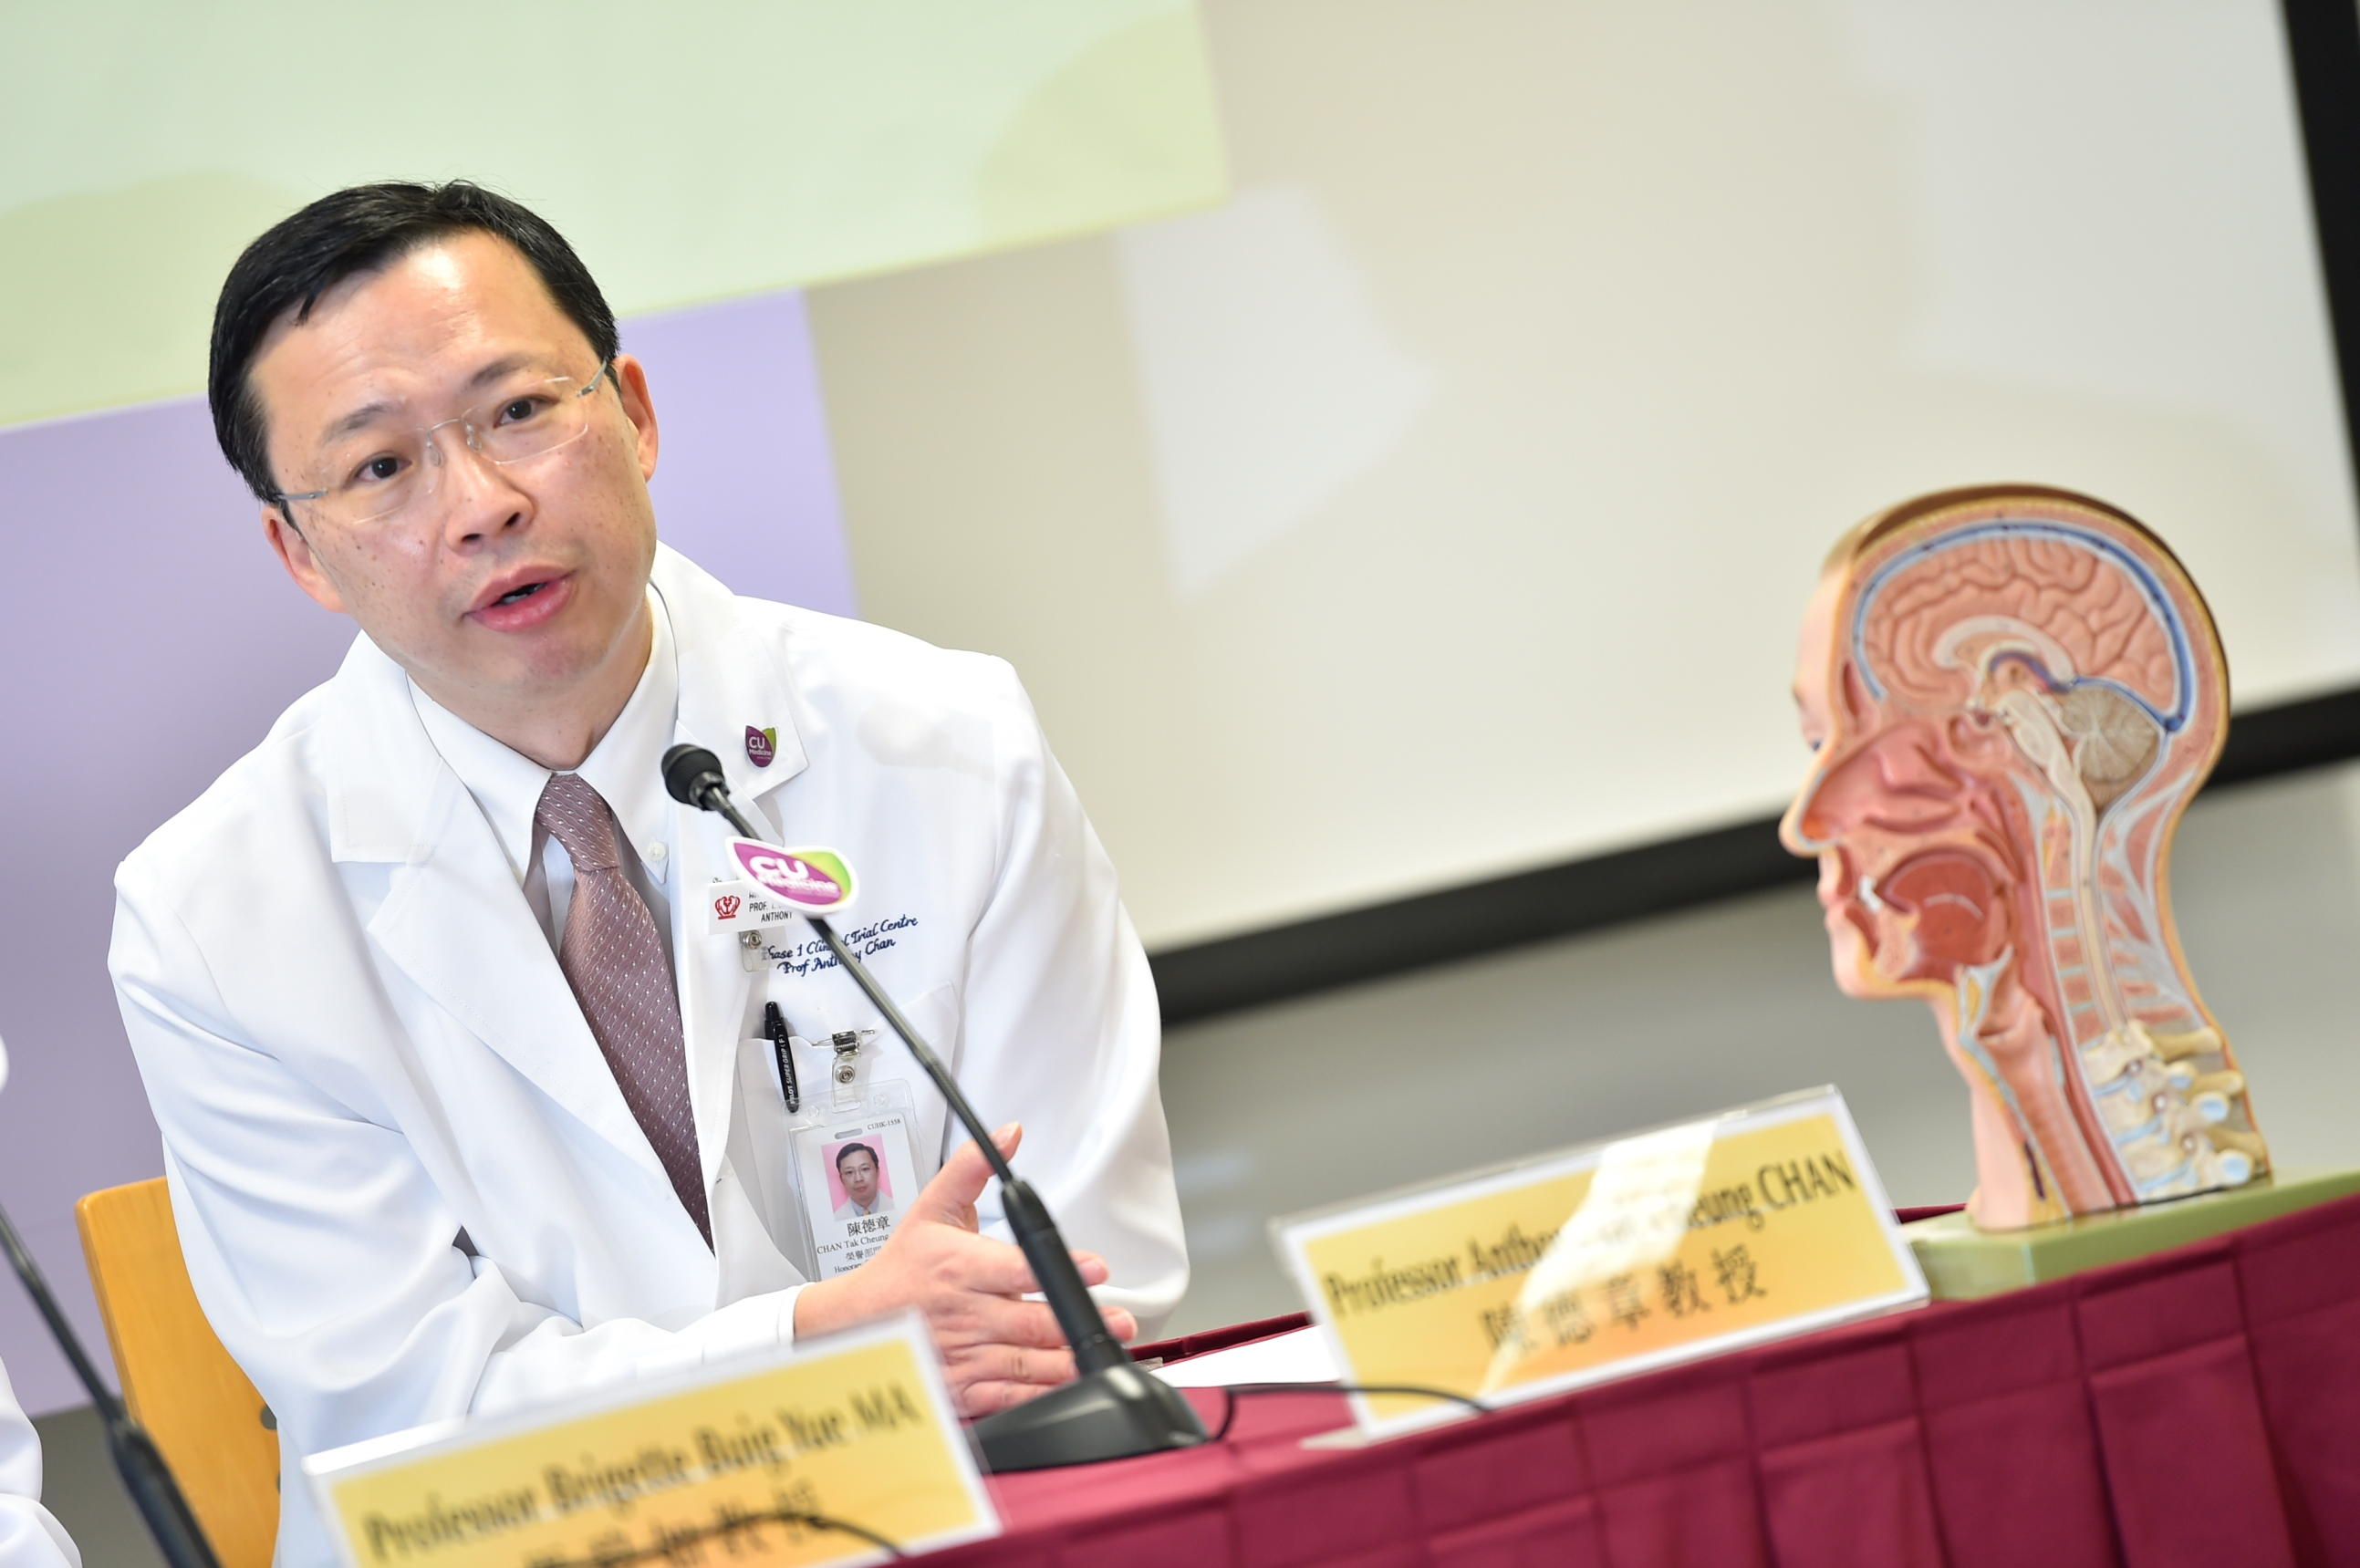 Professor Anthony CHAN says that the CUHK Medicine research team is honoured to lead the international study funded by National Cancer Institute in the United States and work with world-class experts, including those from Mayo Clinic.